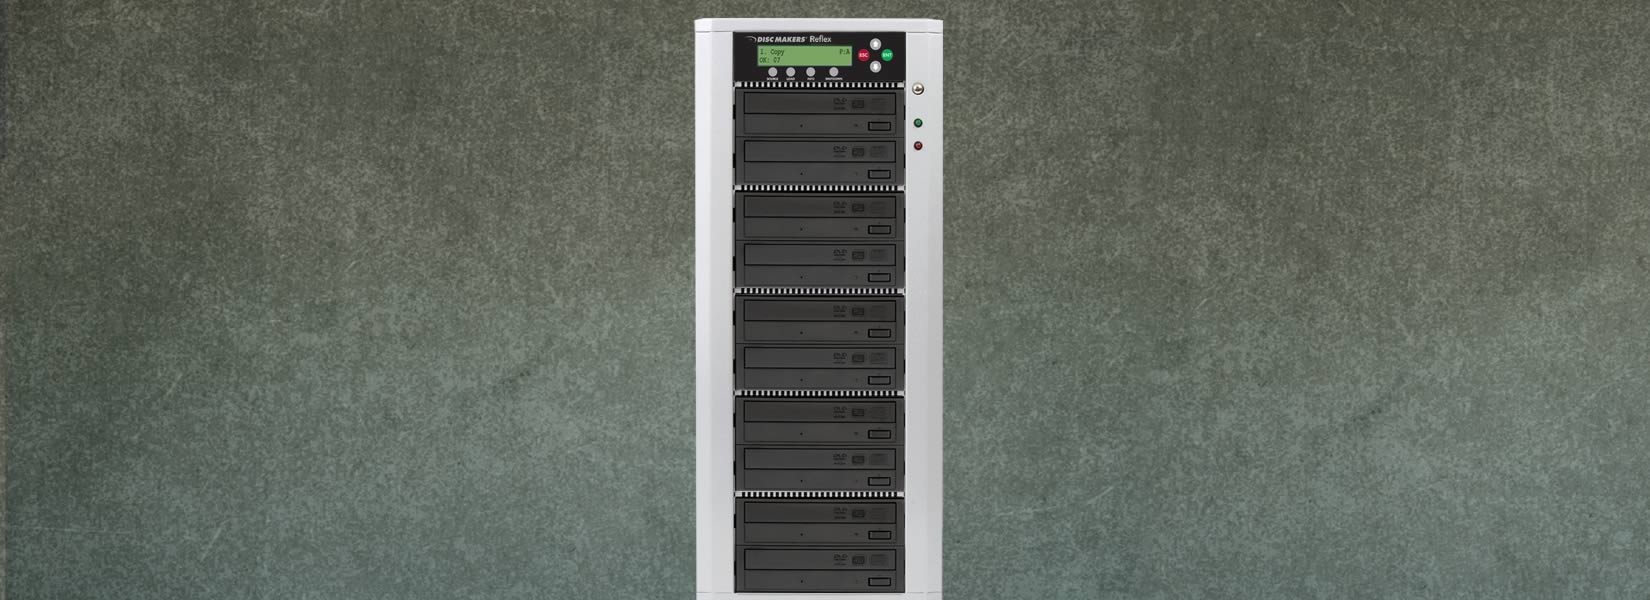 1 to 10 CD Duplicator